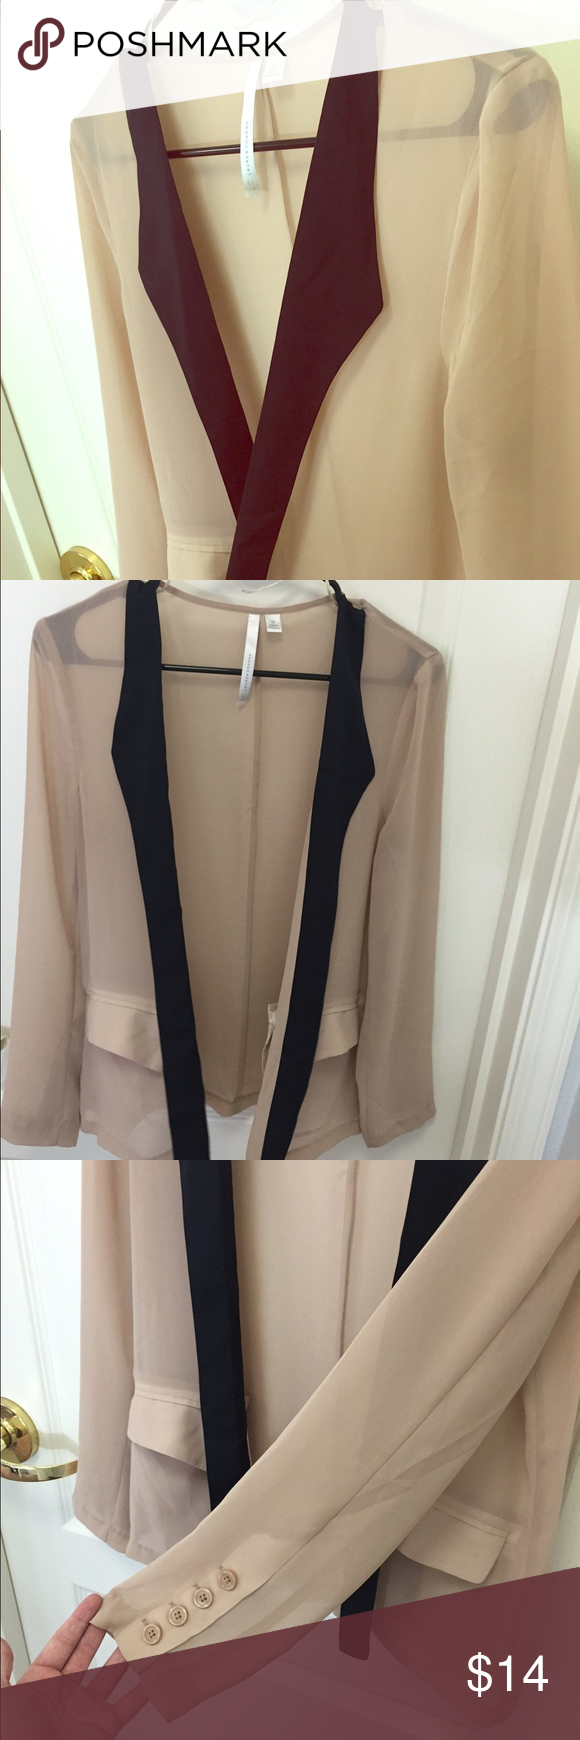 Sheer nude cardigan | Best Nude cardigans and Black trim ideas